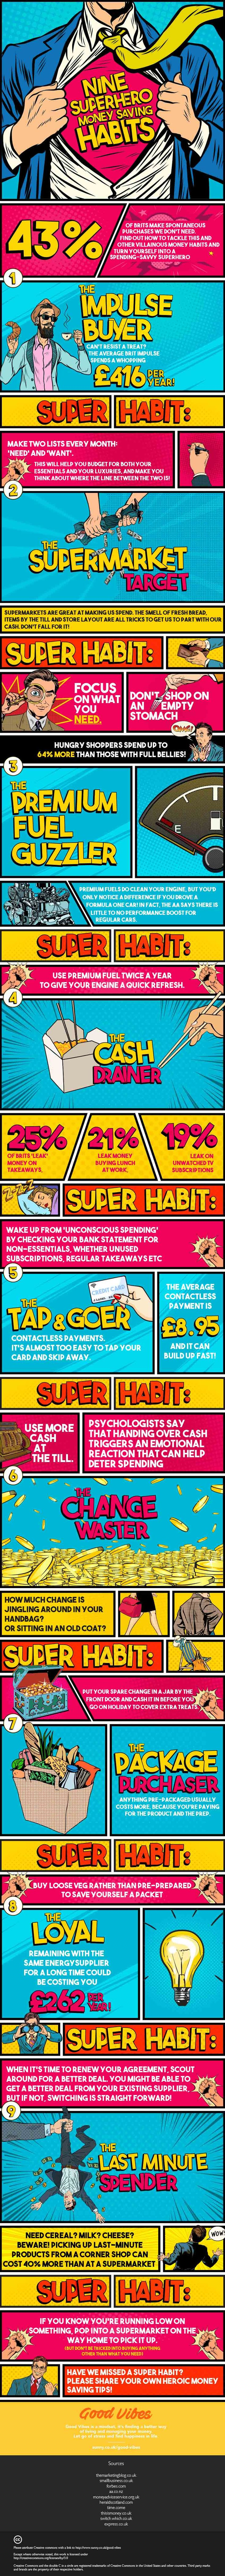 Nine Superhero Saving Habits You Need To Try